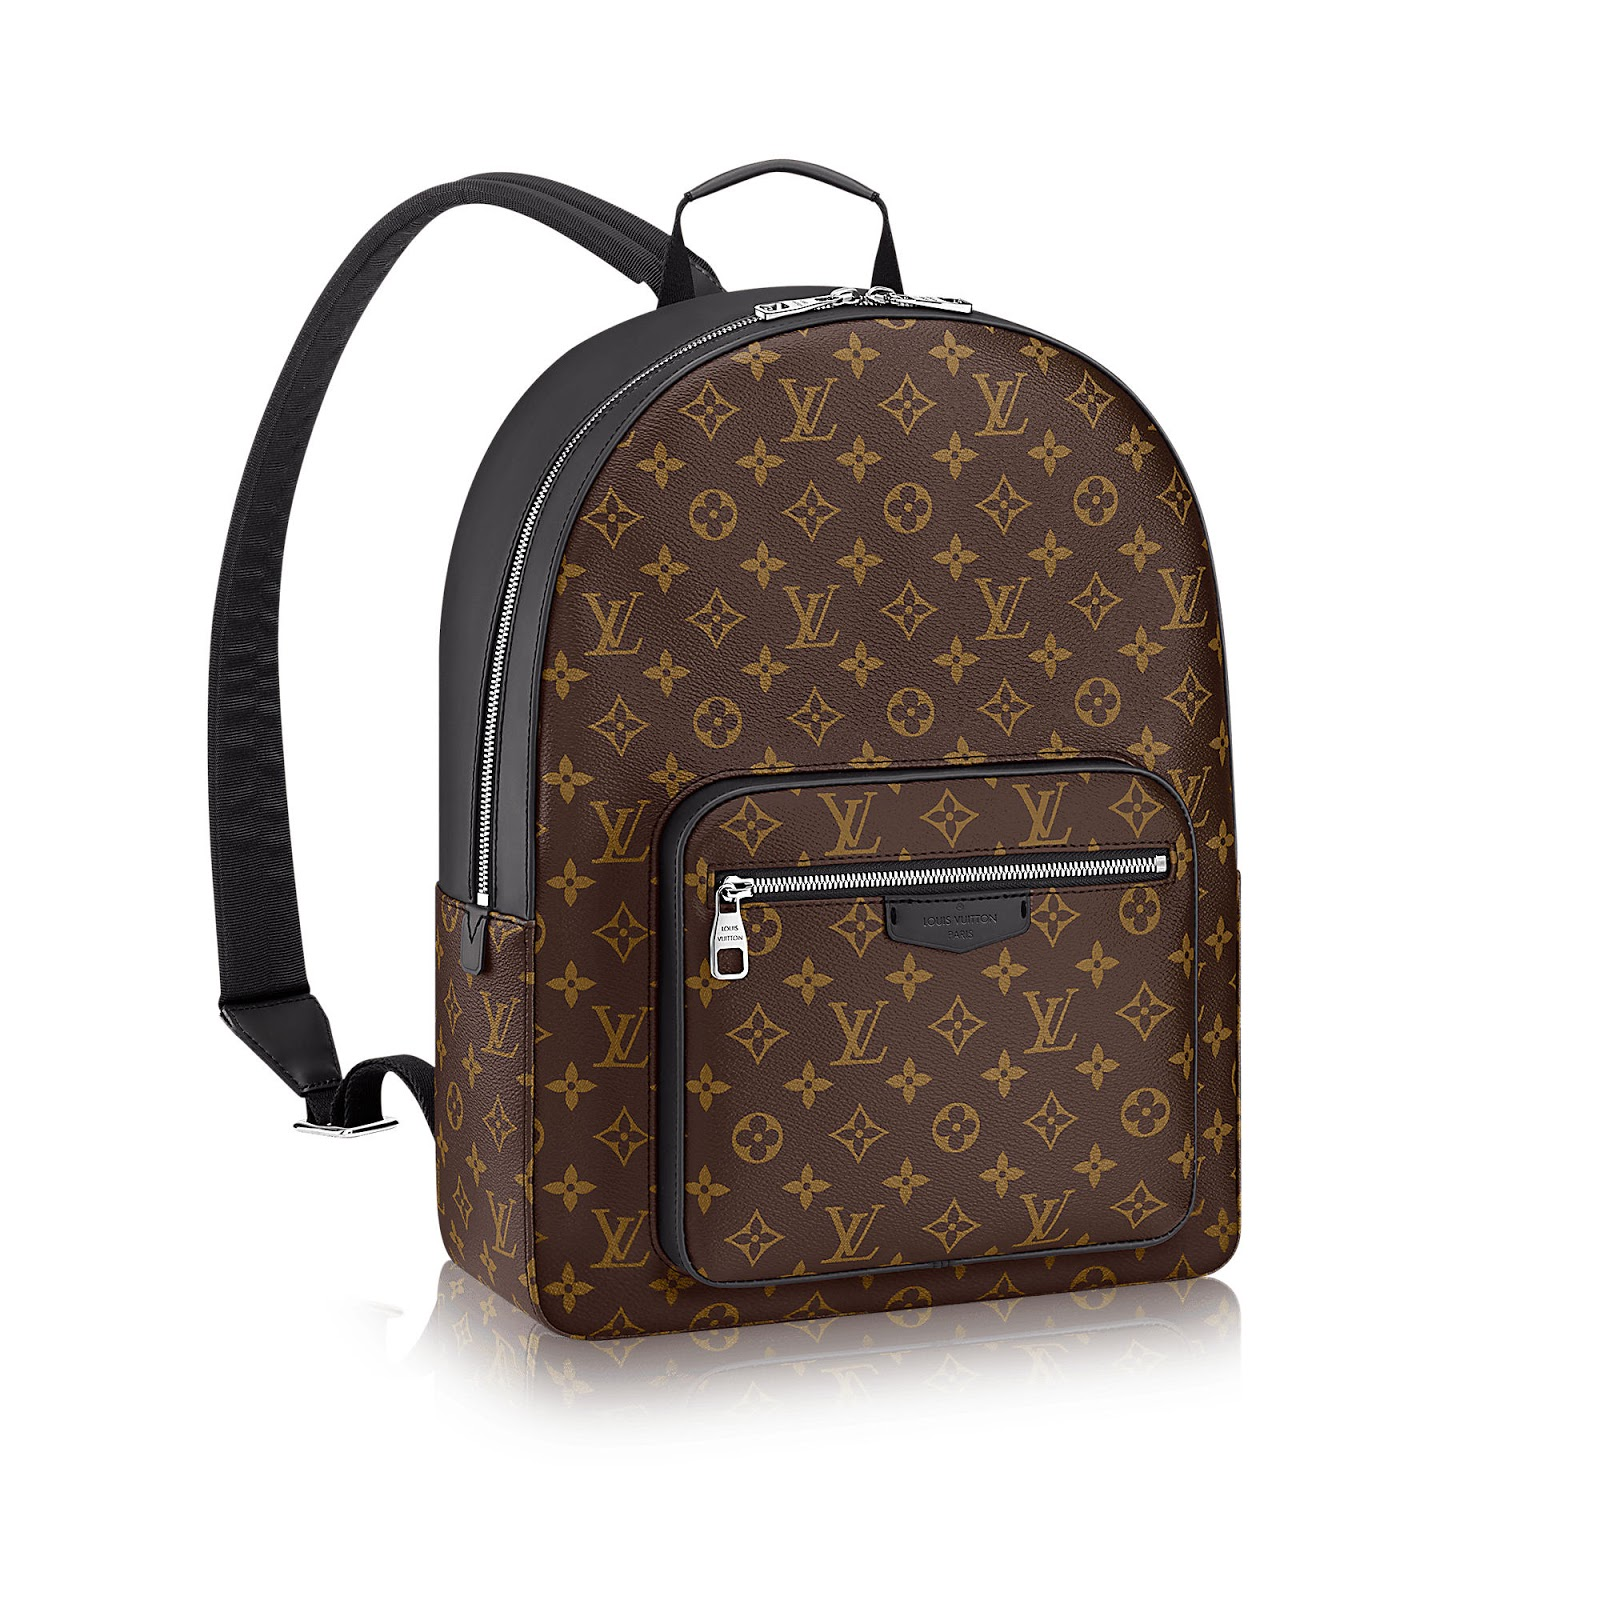 current ob s e ss i o n backpacks louis vuitton versace gucci mcm givenchy obsession. Black Bedroom Furniture Sets. Home Design Ideas